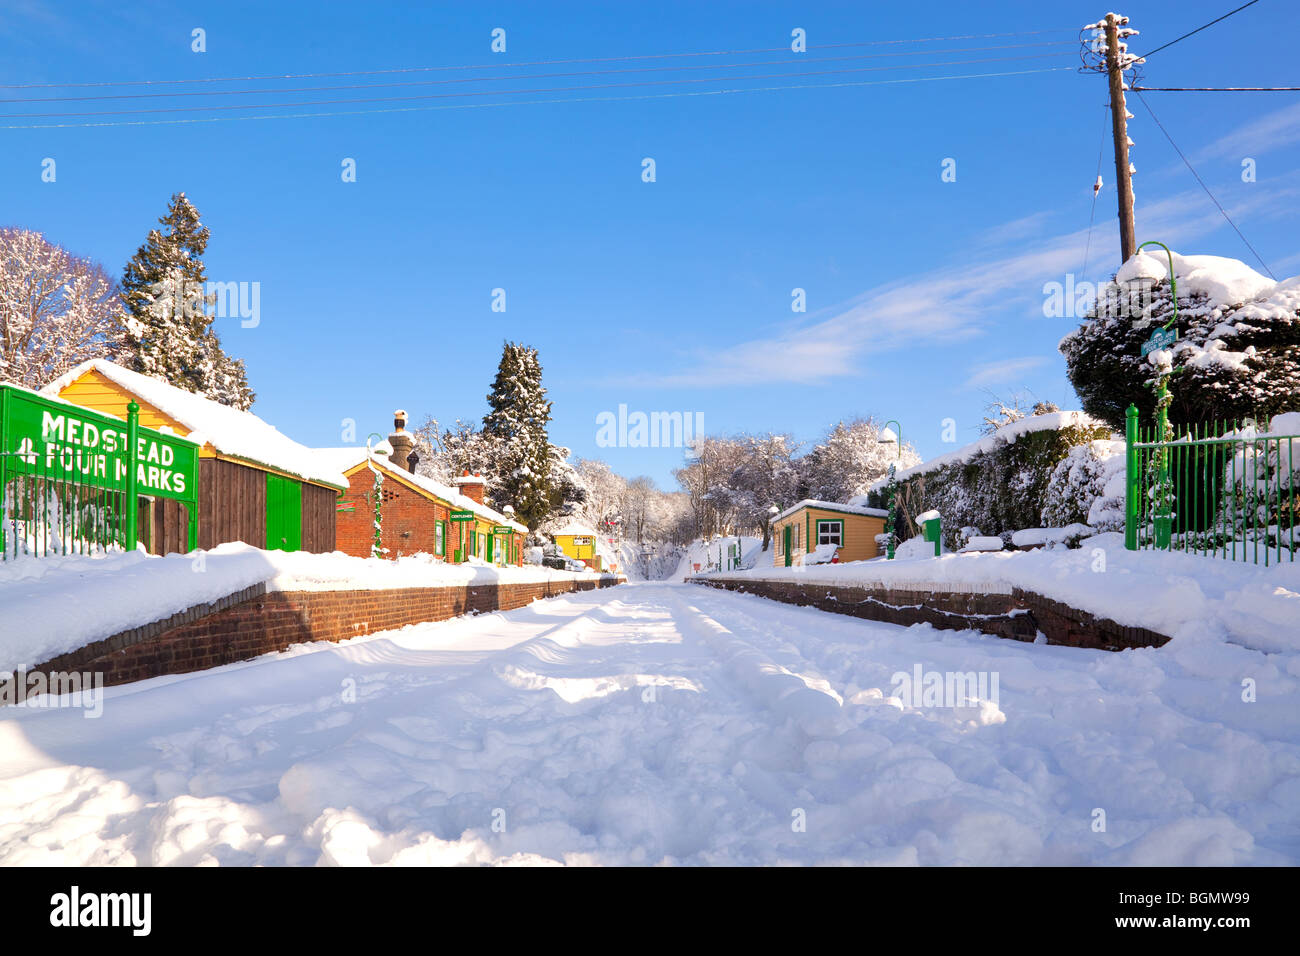 Four Marks and Medstead railway station after a heavy snow fall - Stock Image